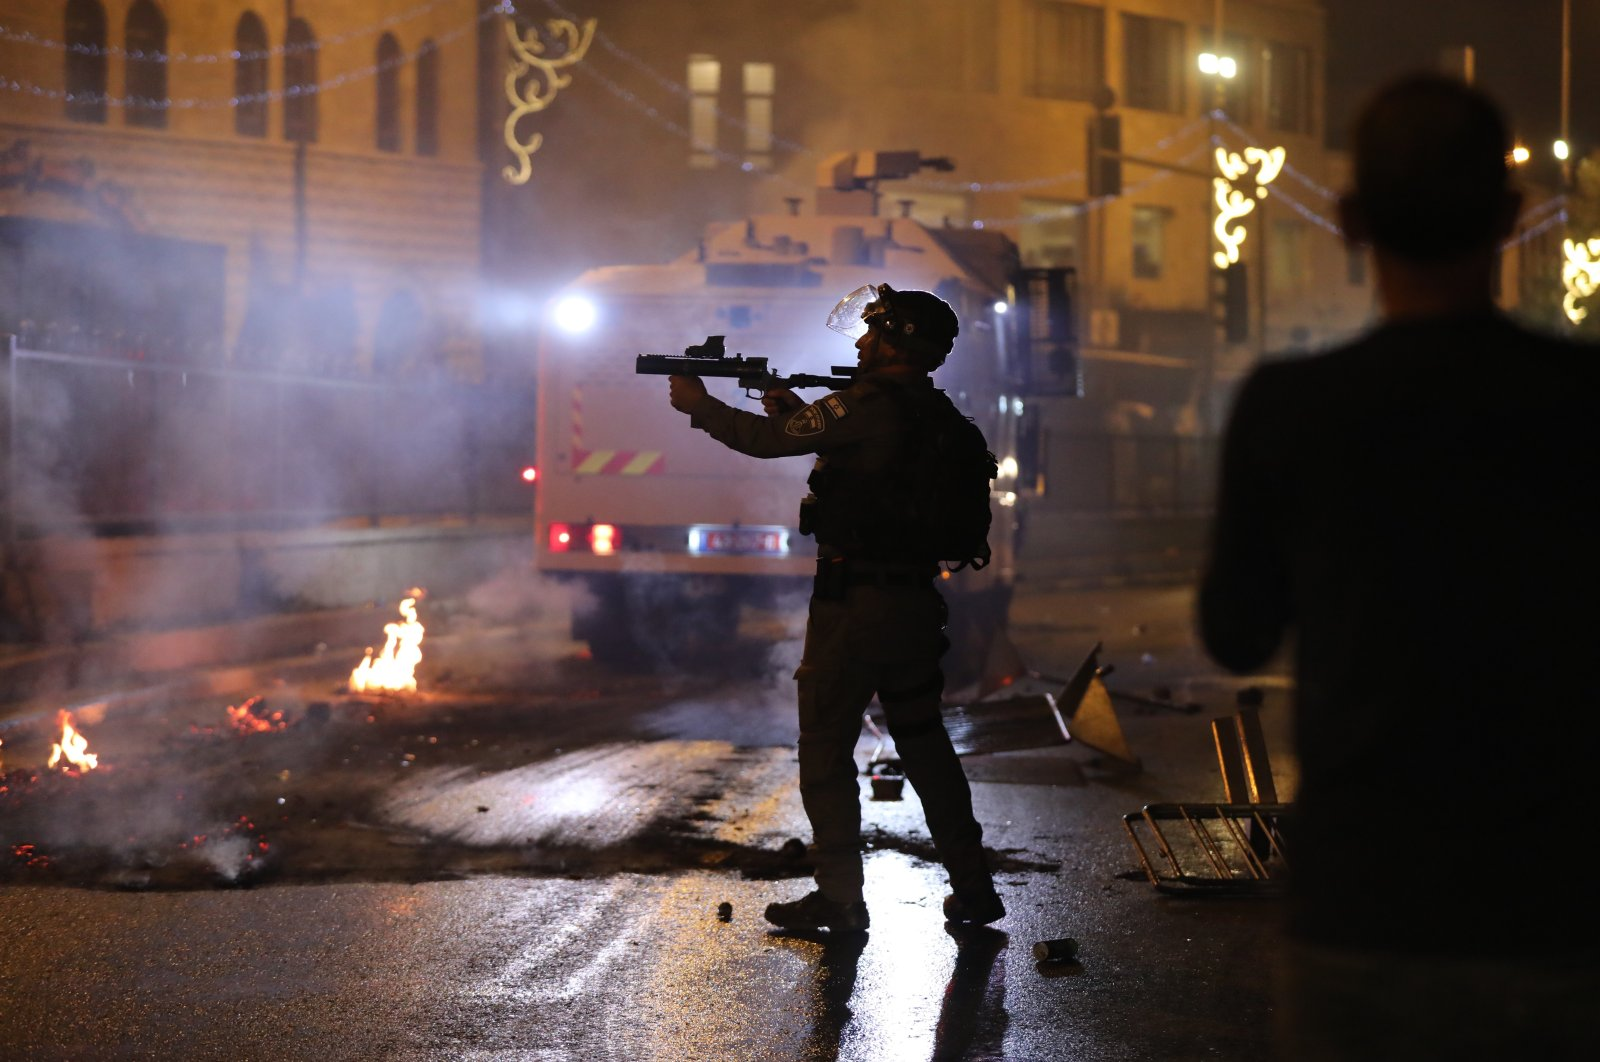 Israeli police fires grenades during a protest at the Damascus gate supporting Palestinian families facing eviction from their homes at the Sheikh Jarrah neighborhood, East Jerusalem, 08 May 2021. (EPA Photo)